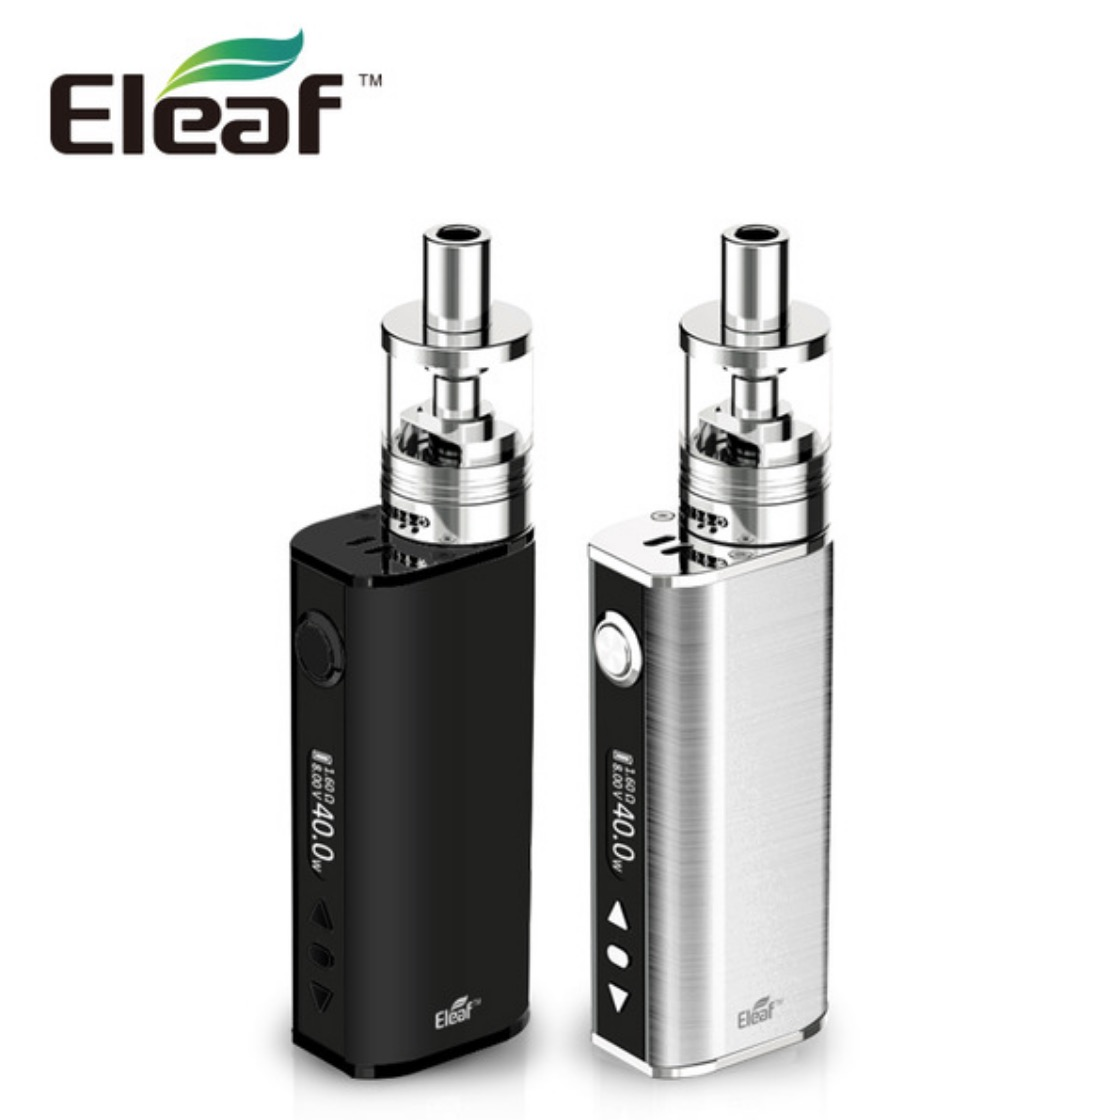 cigarette electronique - vapoteuse - e-cigarette eleaf TC40W GS Tank atomiseur